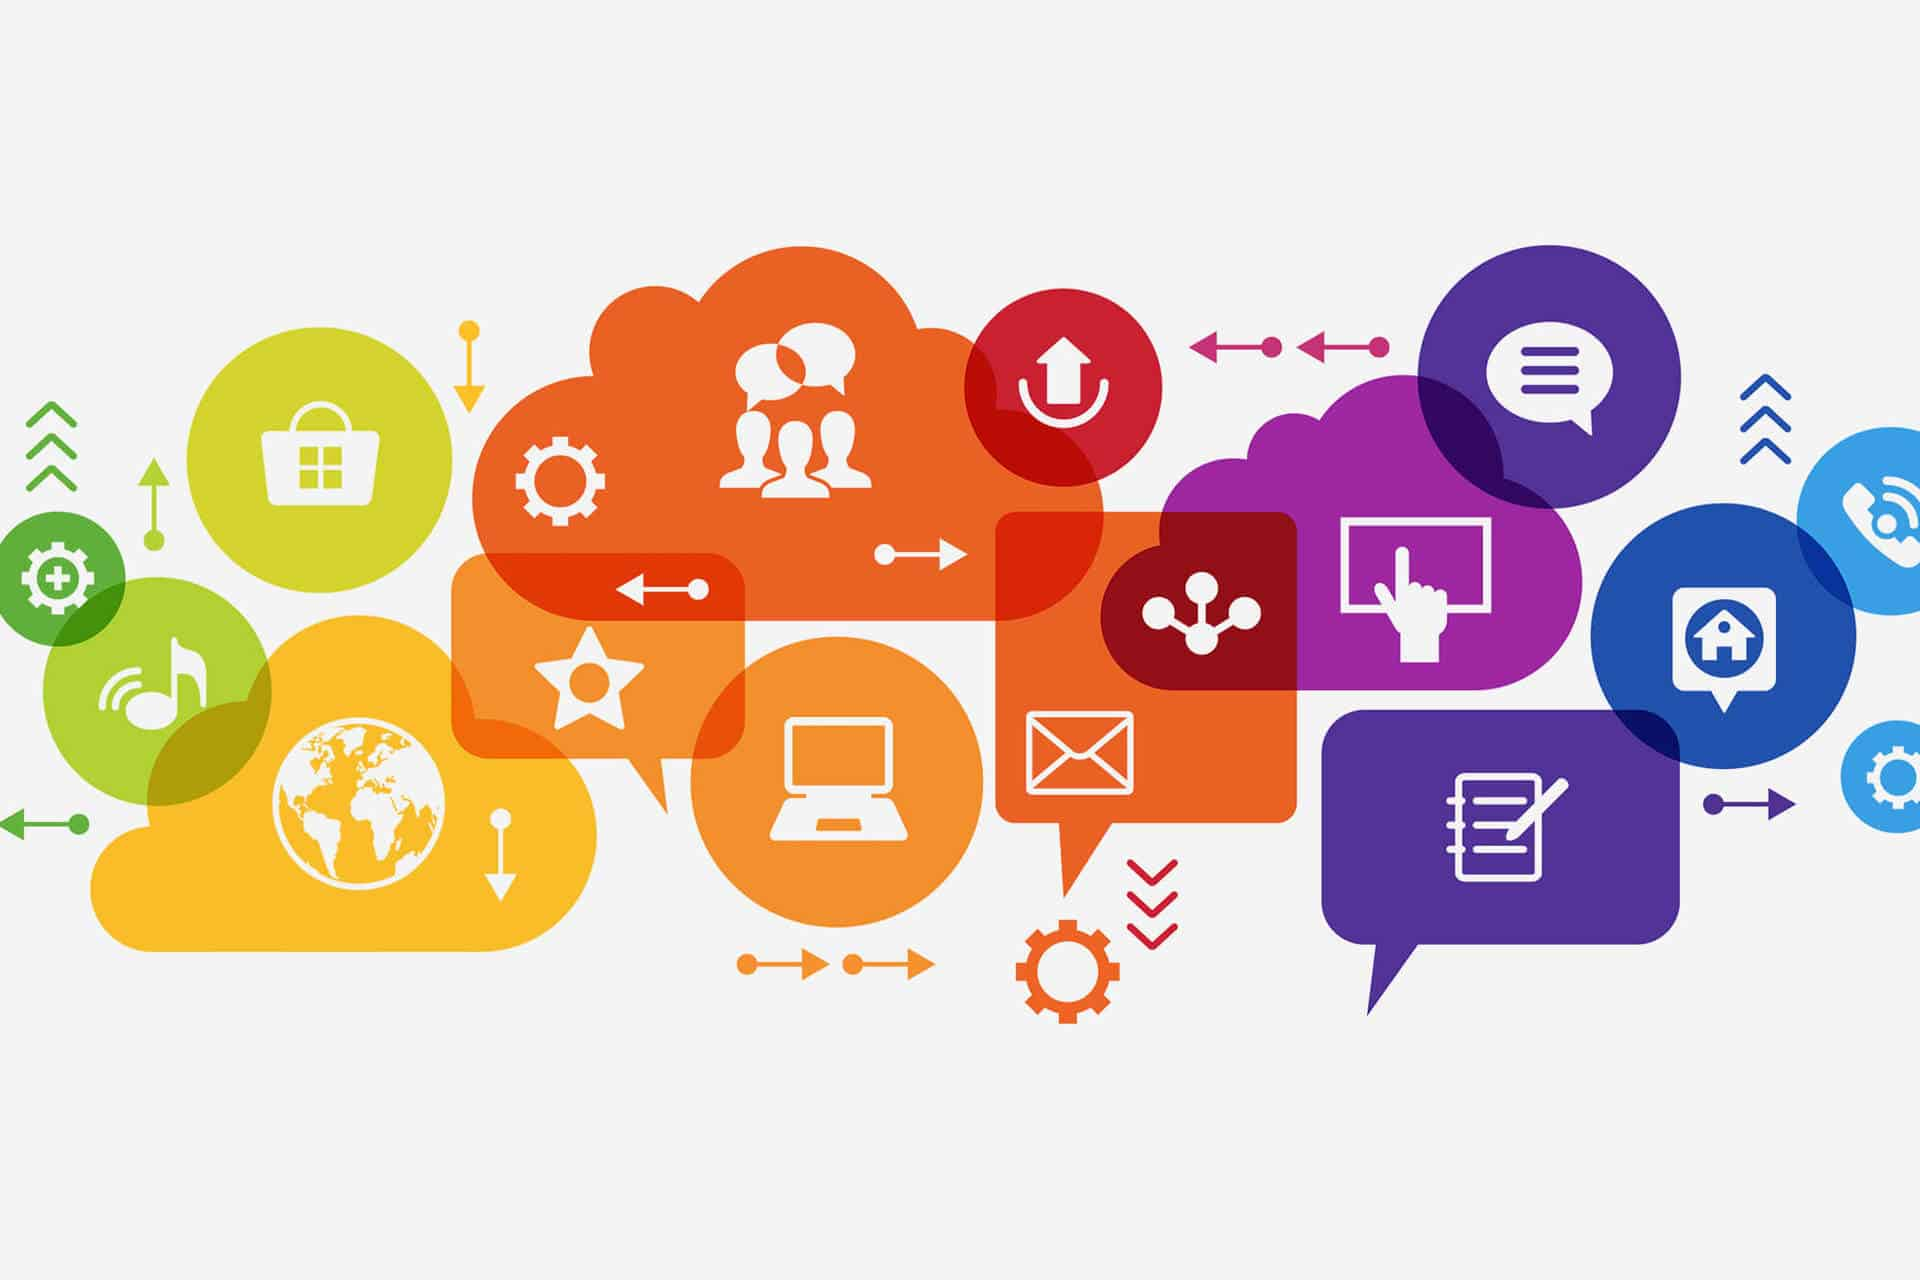 various icons about digital marketing